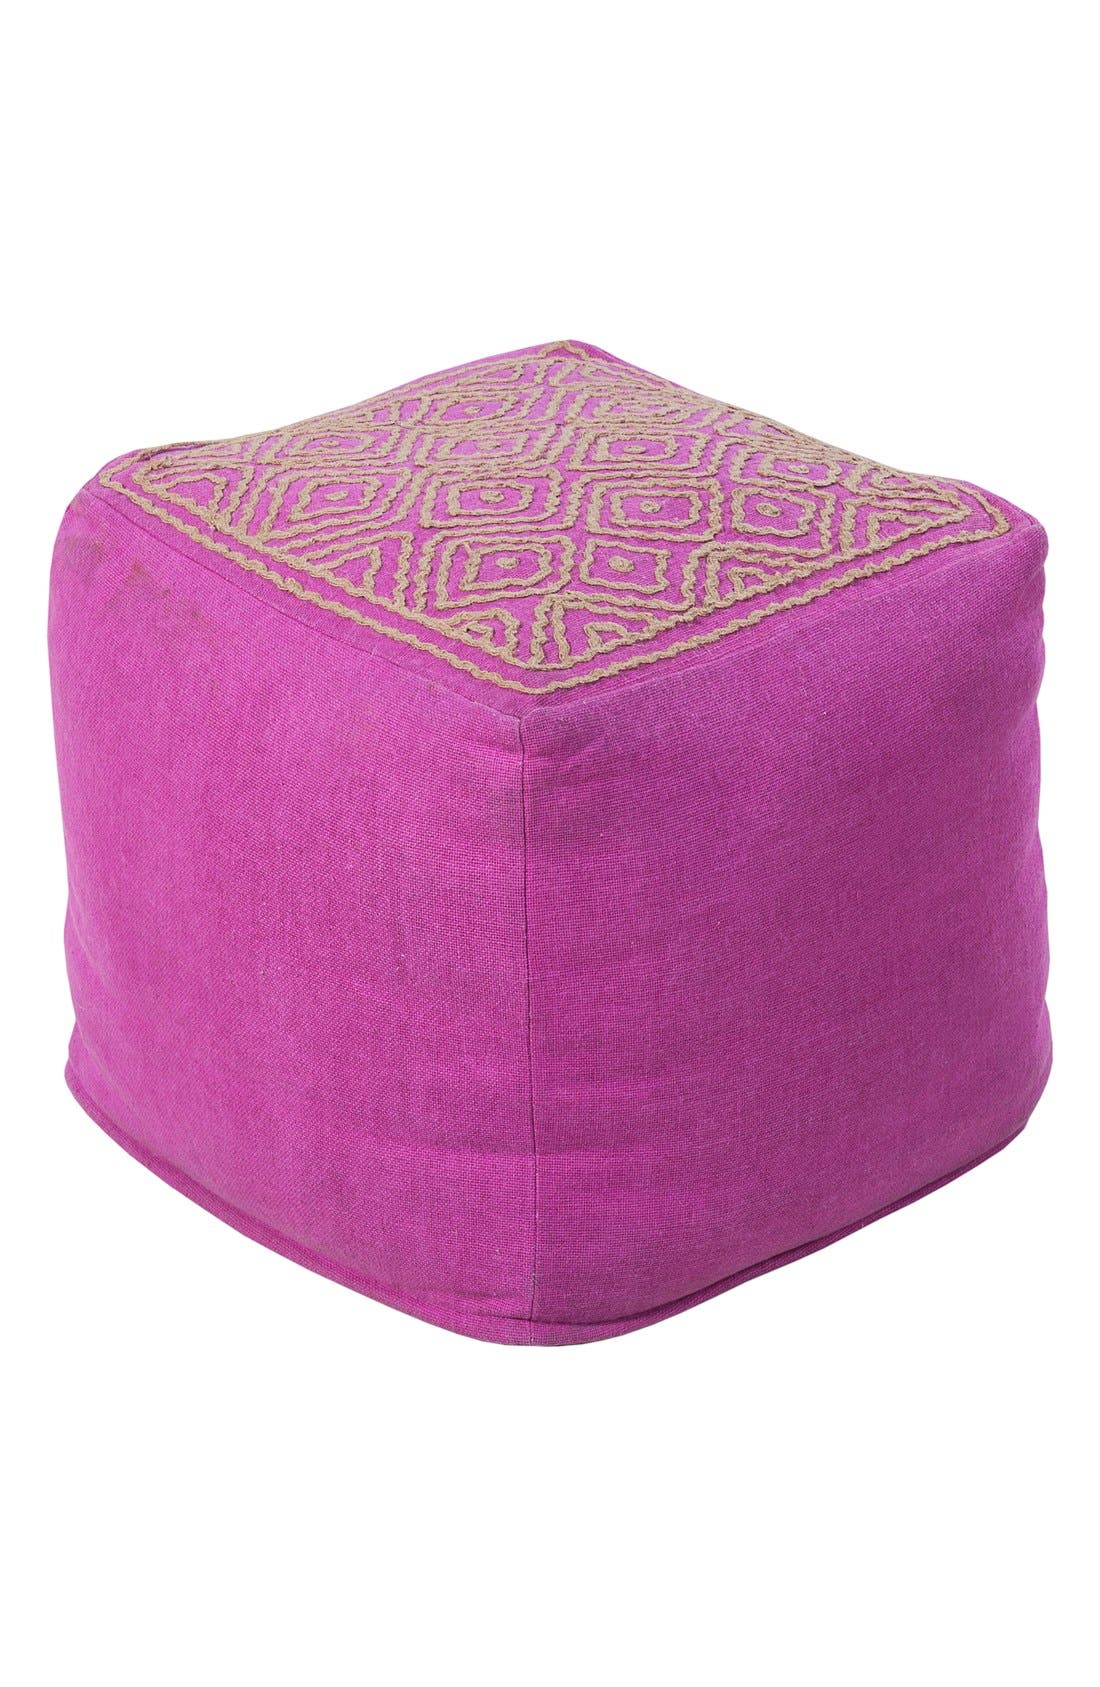 Alternate Image 1 Selected - Surya Home 'Atlas' Pouf